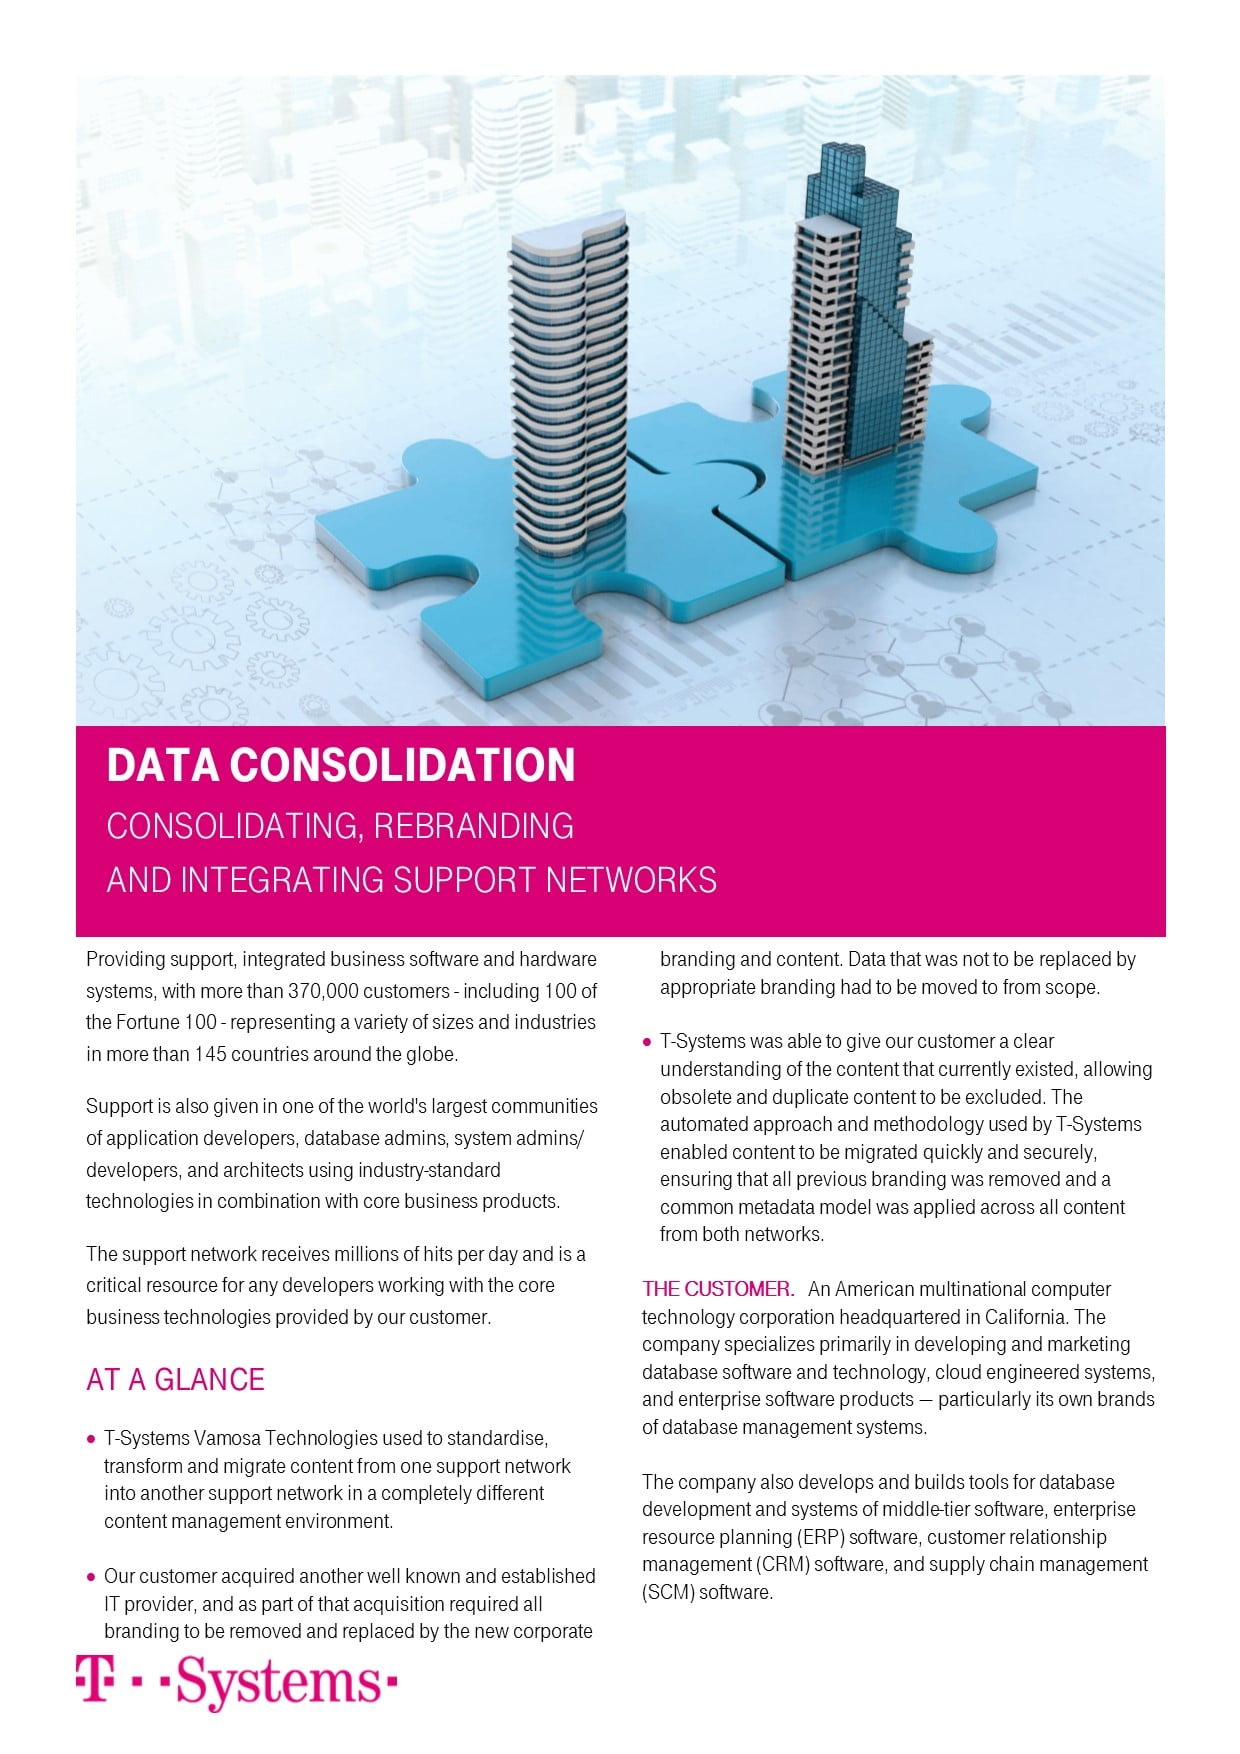 Case Study: Consolidating support networks